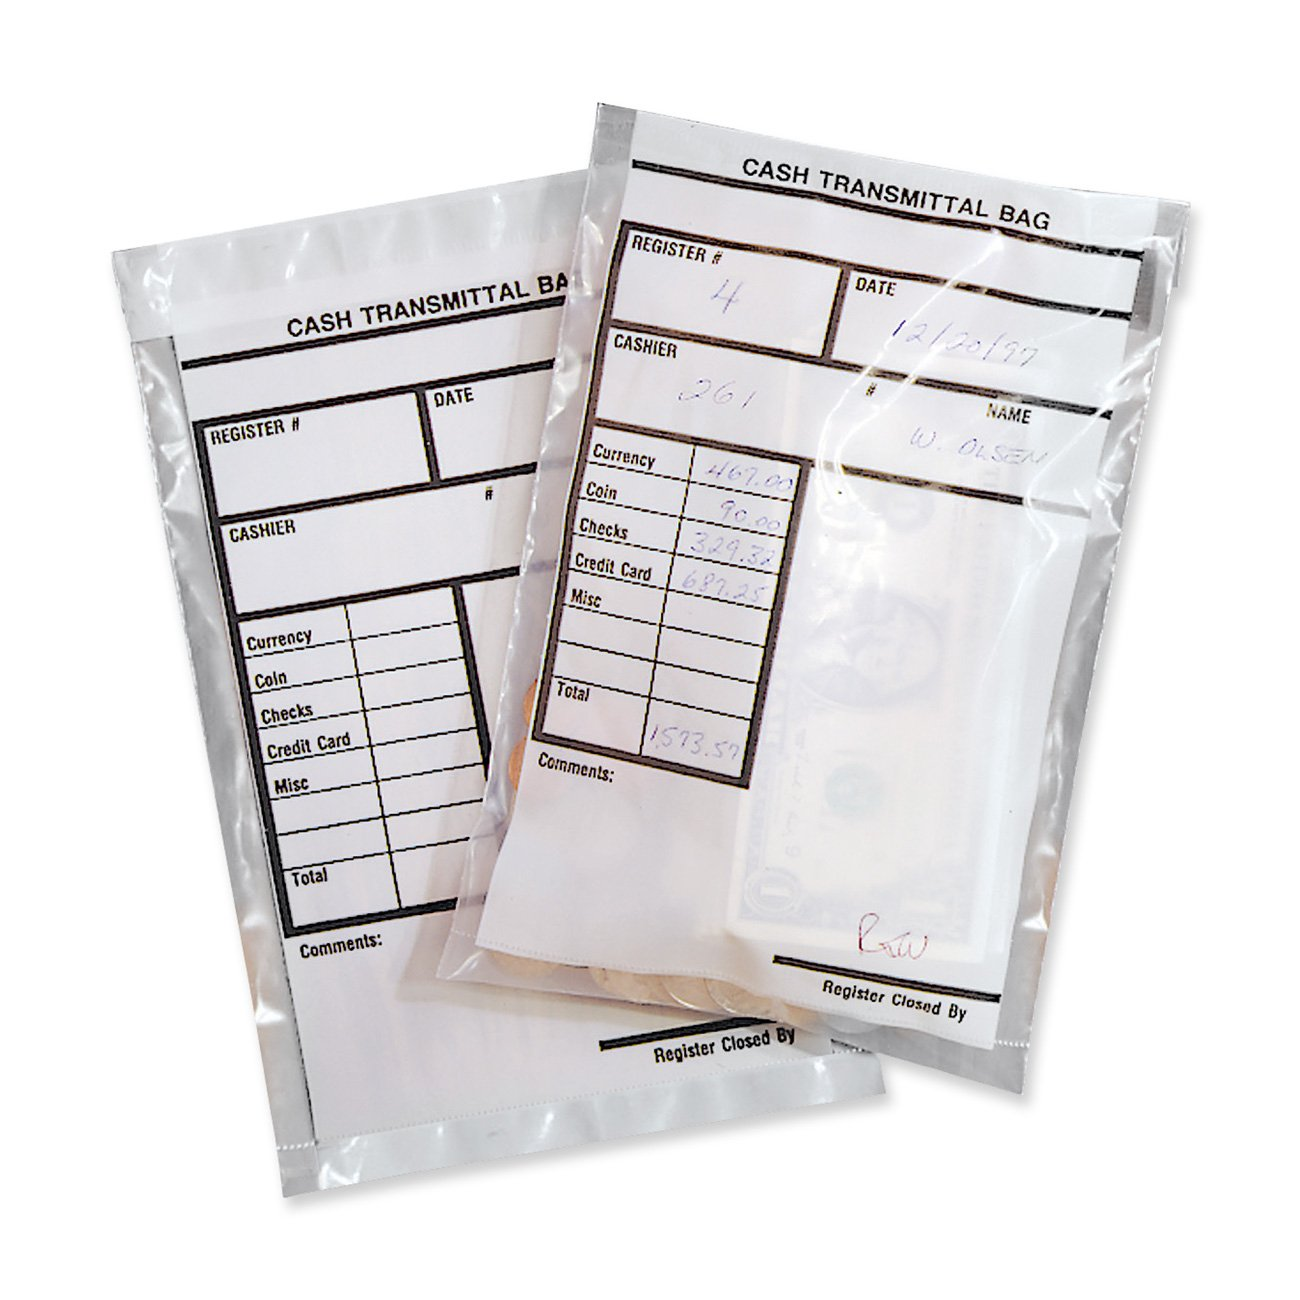 MMF Industries Cash Transmittal Bags, Self-Sealing with Permanent Adhesive, 6 x 9 Inches, Clear, 500 Bags - (236006920) by MMF Industries